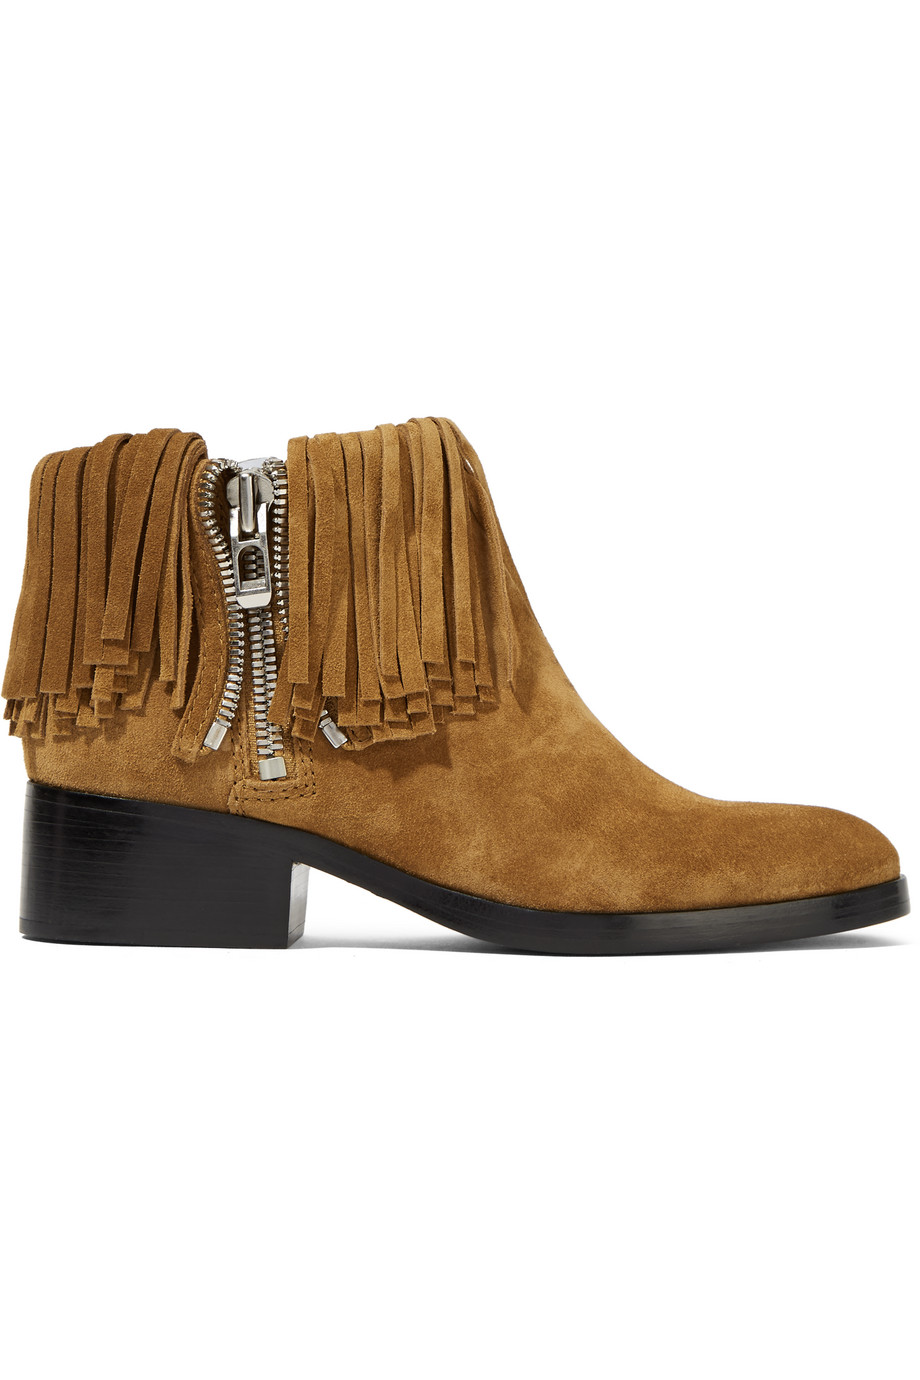 3.1 Phillip Lim Alexa Fringed Suede Ankle Boots, Tan, Women's US Size: 7.5, Size: 38